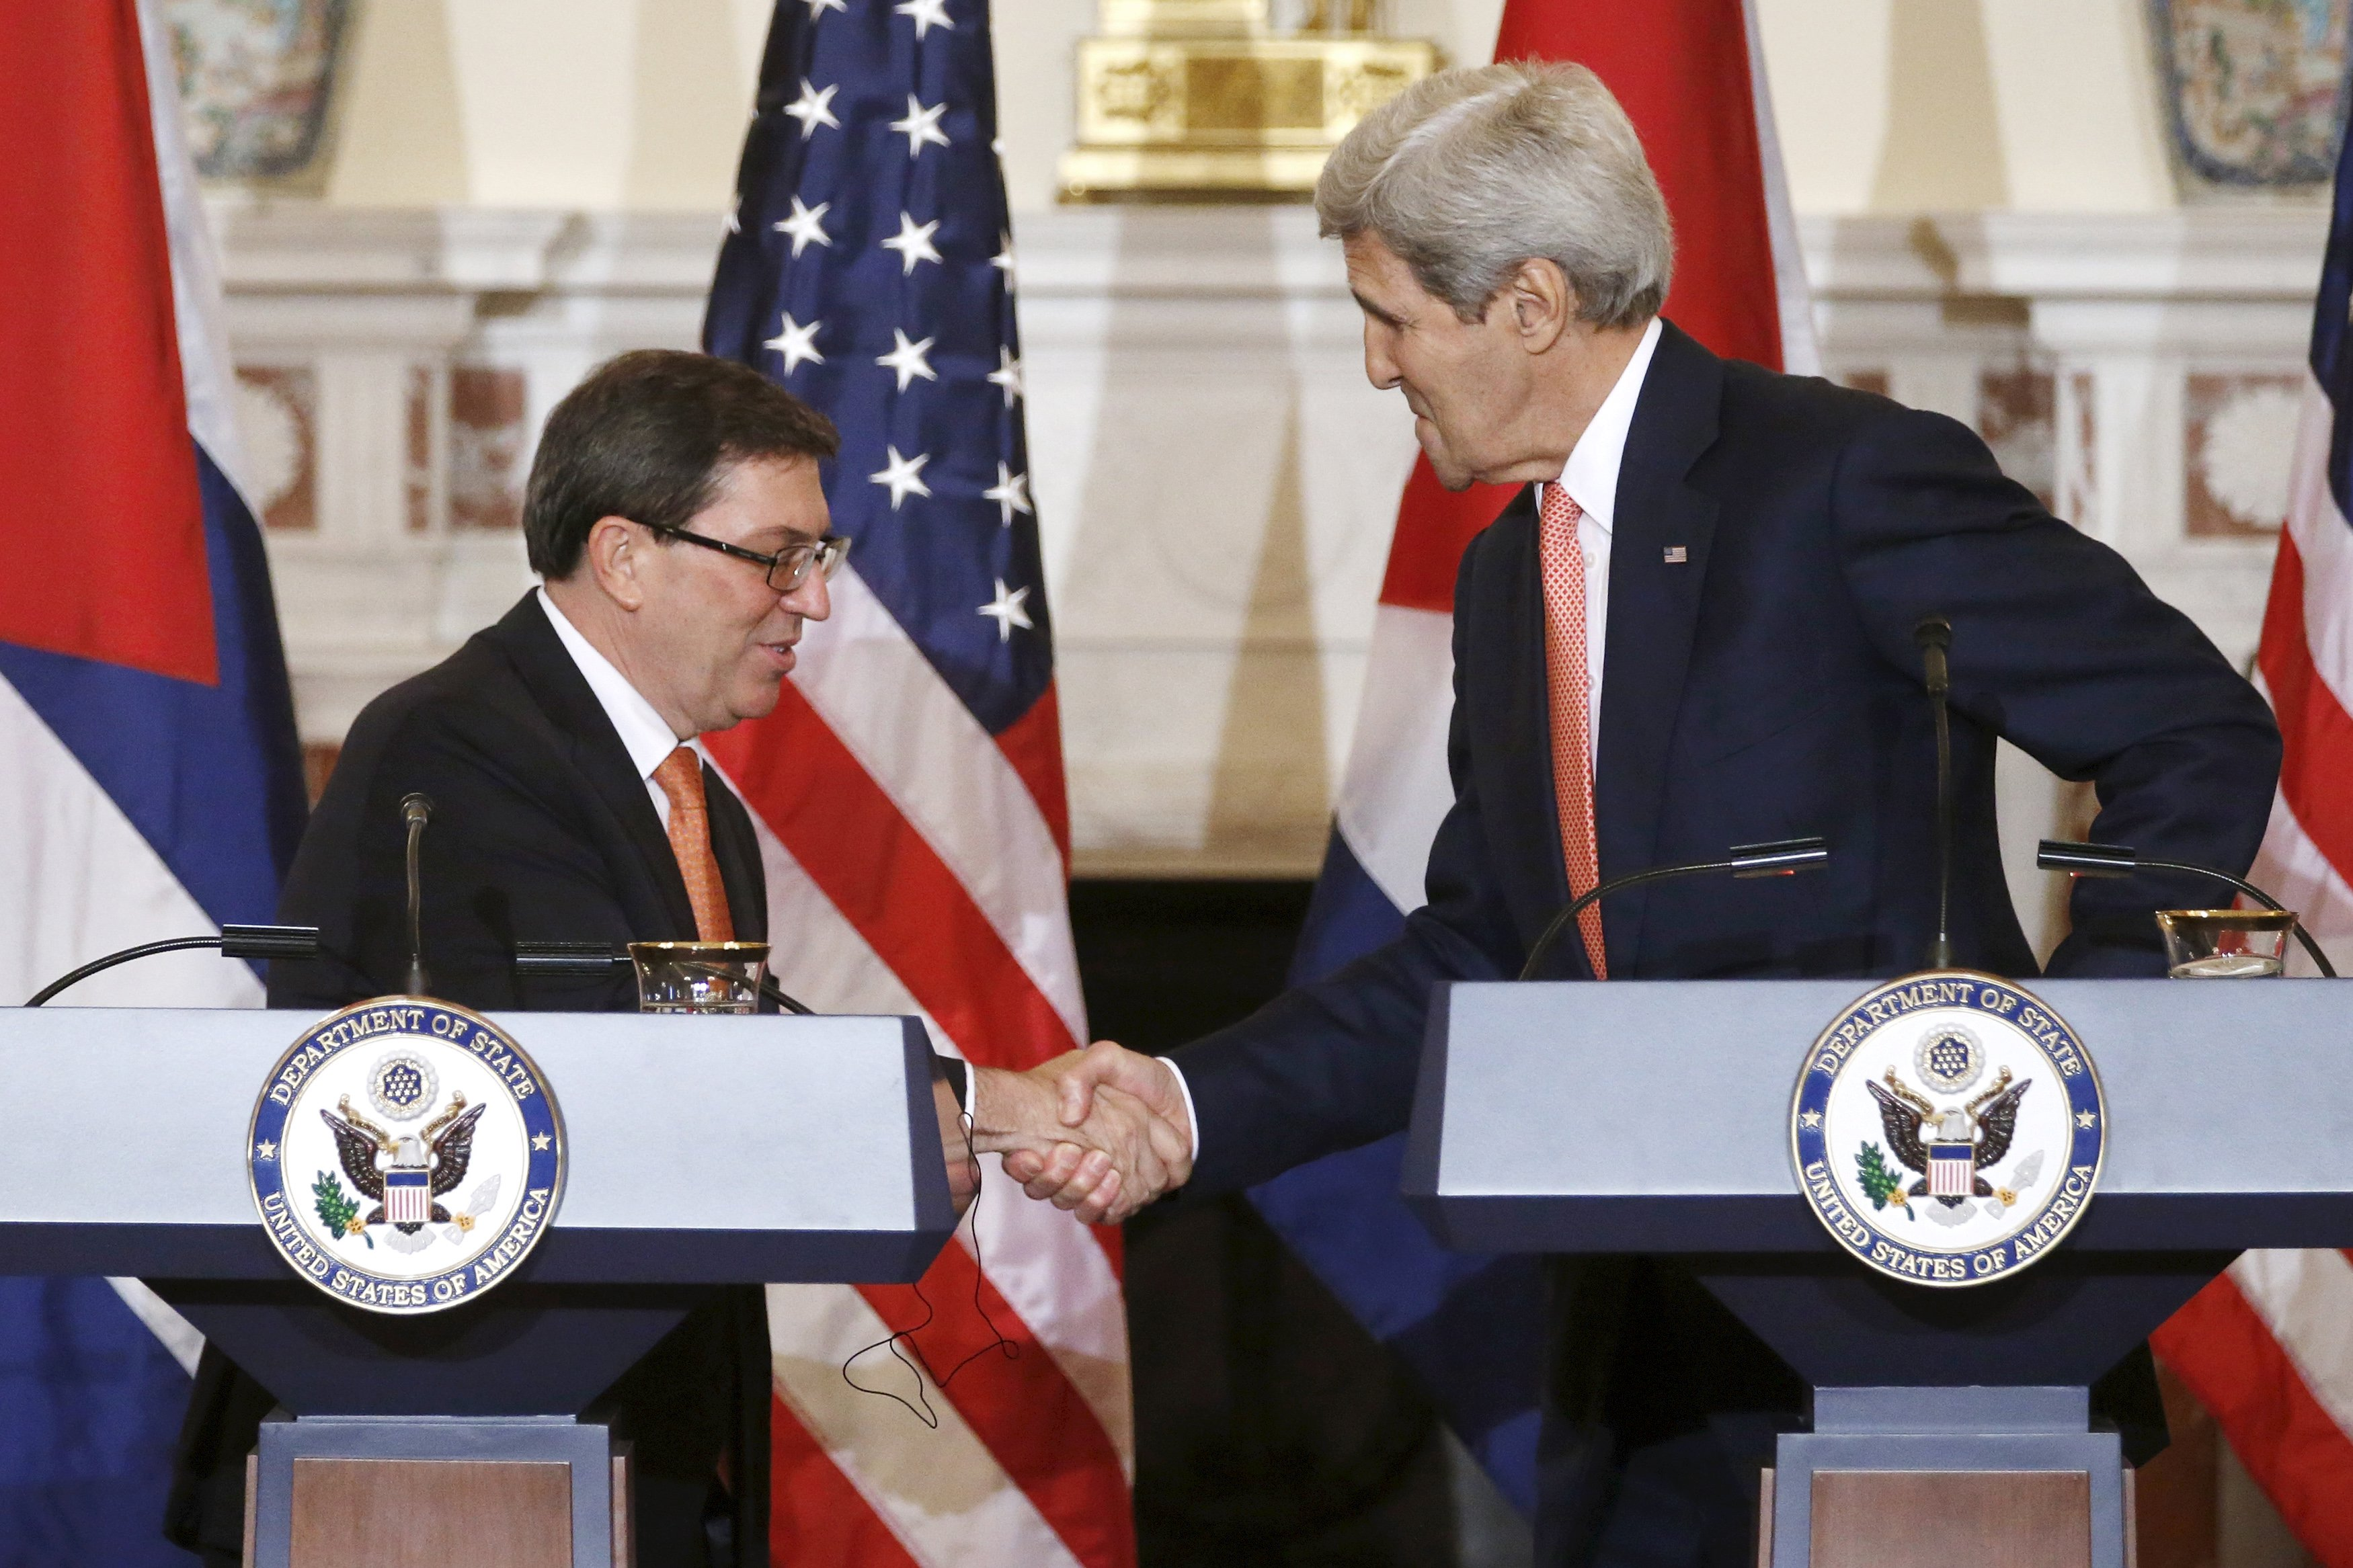 Cuba's Foreign Minister Bruno Eduardo Rodriguez Parilla (left) and US Secretary of State John Kerry shake hands during a news conference at the State Department in Washington on July 20, 2015. The Cuban flag was raised over Havana's embassy in Washington on Monday for the first time in 54 years as the United States and Cuba formally restored relations, opening a new chapter of engagement between the former Cold War foes.  Photo: Reuters